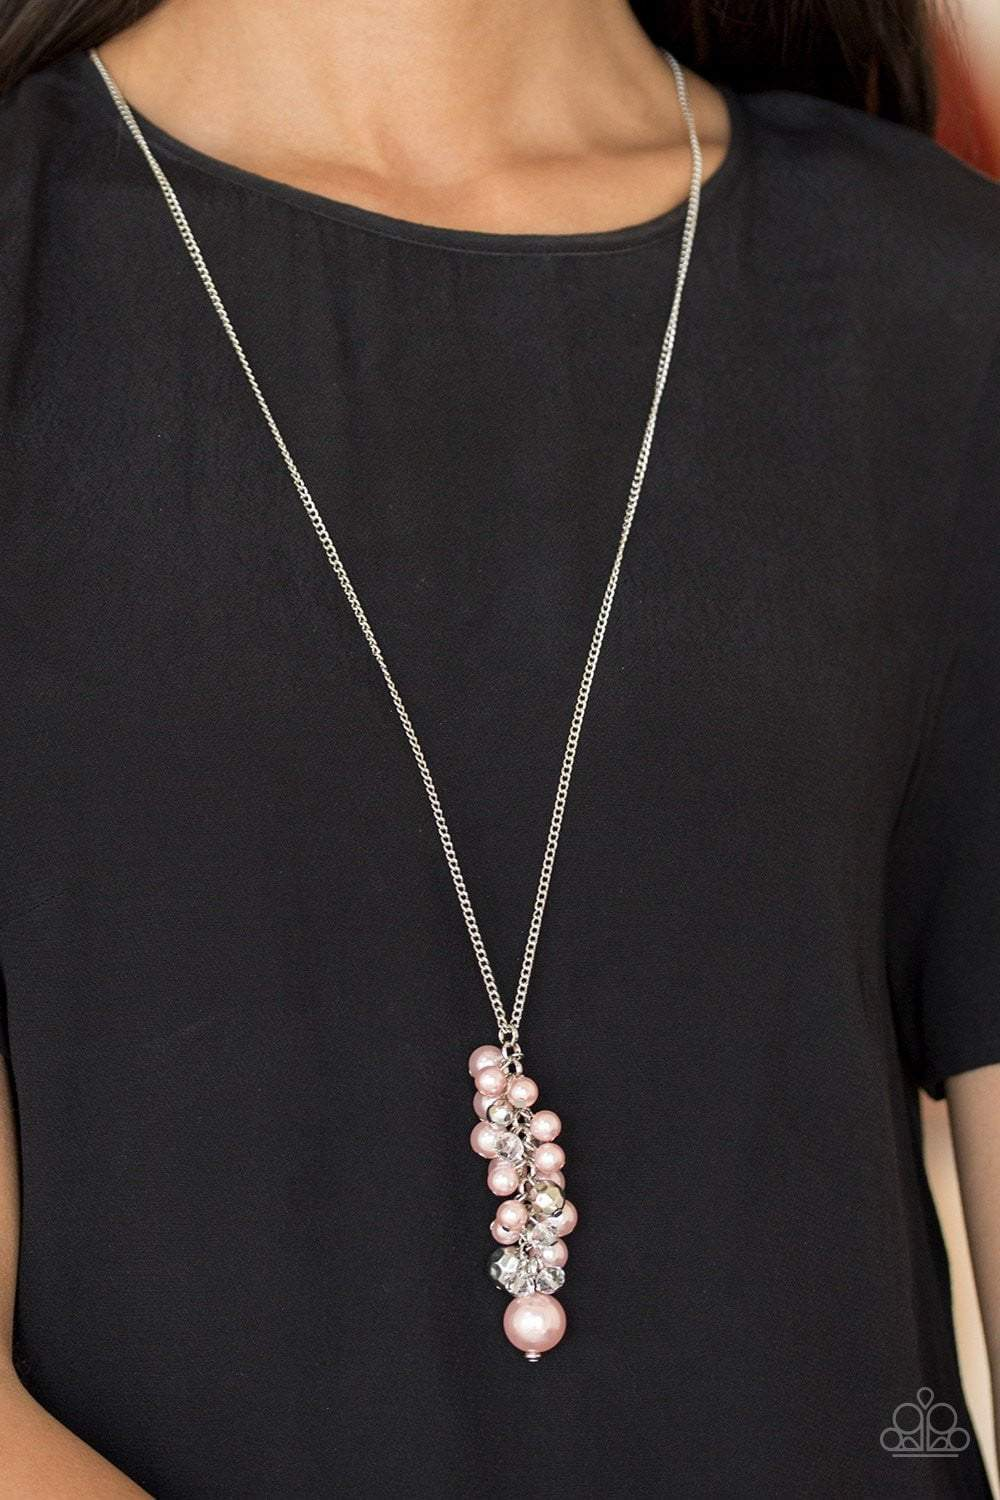 Paparazzi Ballroom Belle - Pink Necklace - Bling It On Online